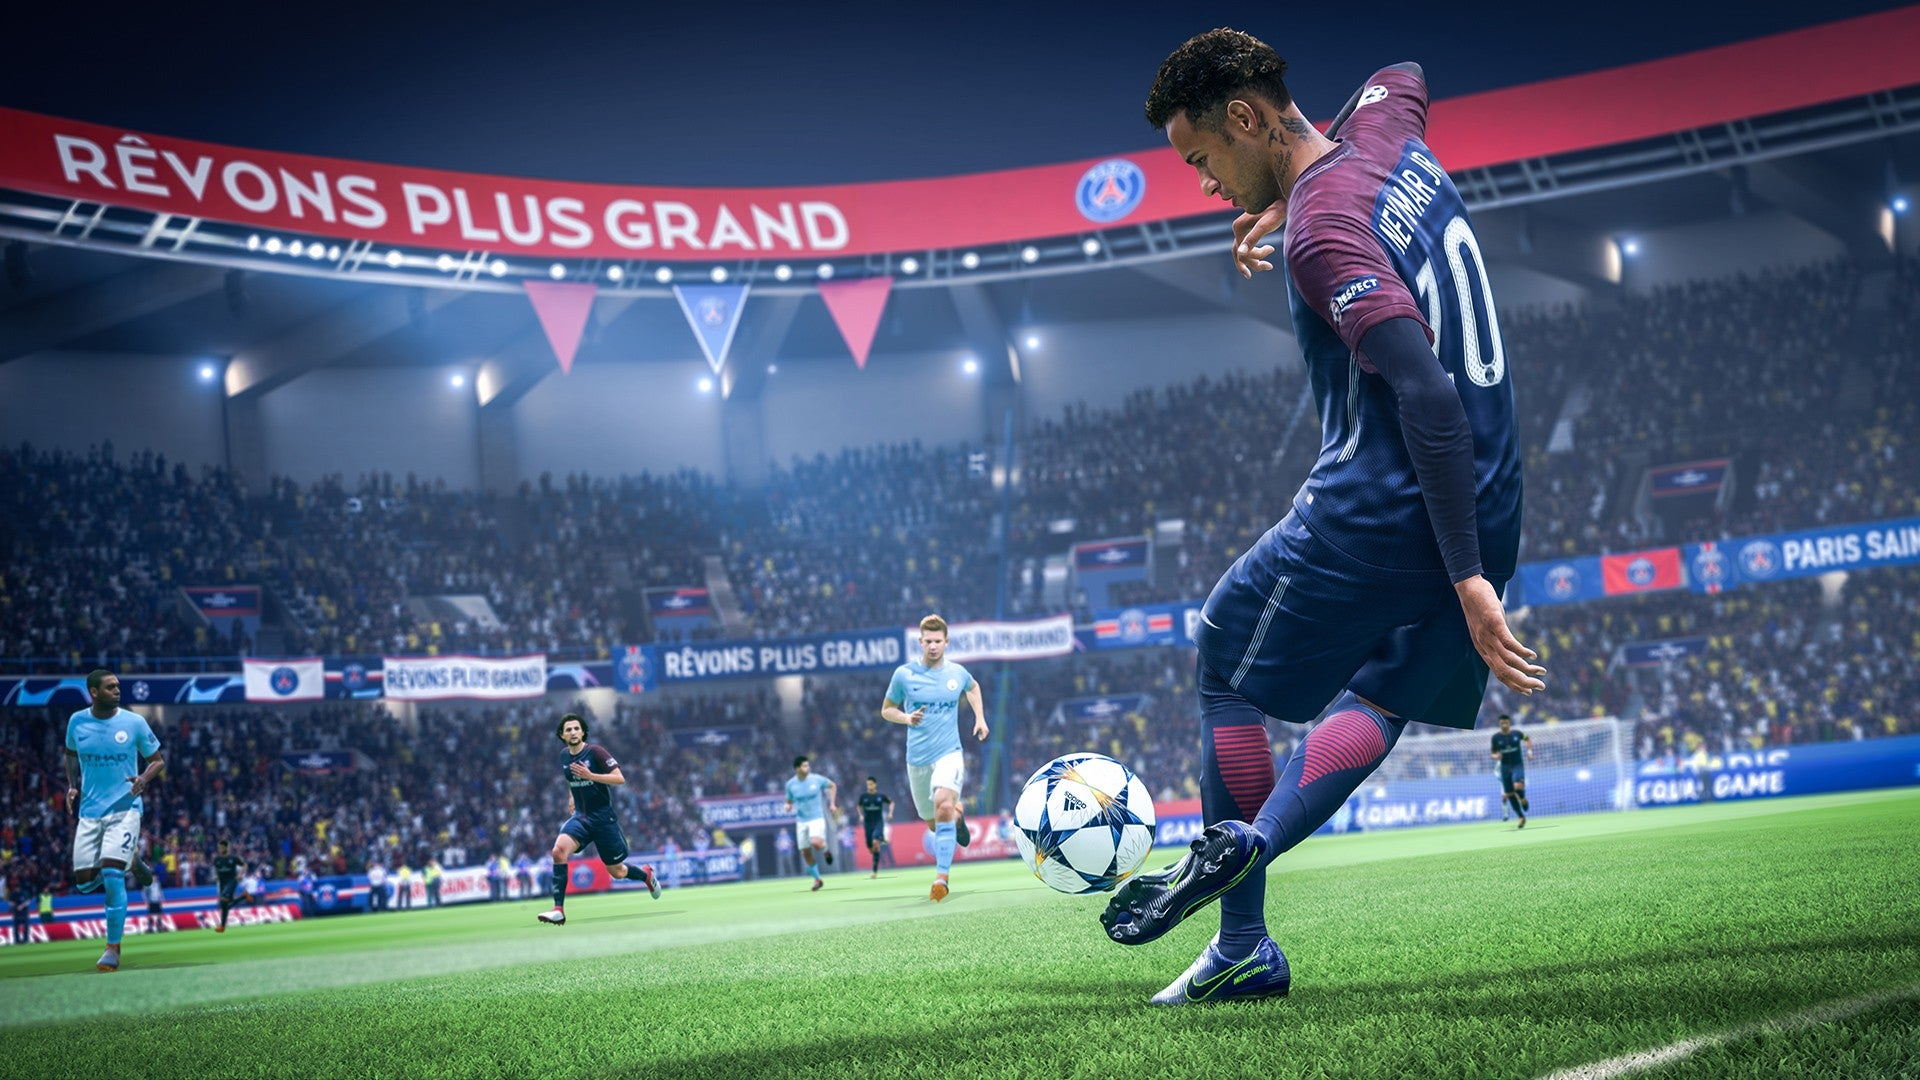 fifa 19 review trusted reviews rh trustedreviews com FIFA Soccer 02 FIFA Soccer 10